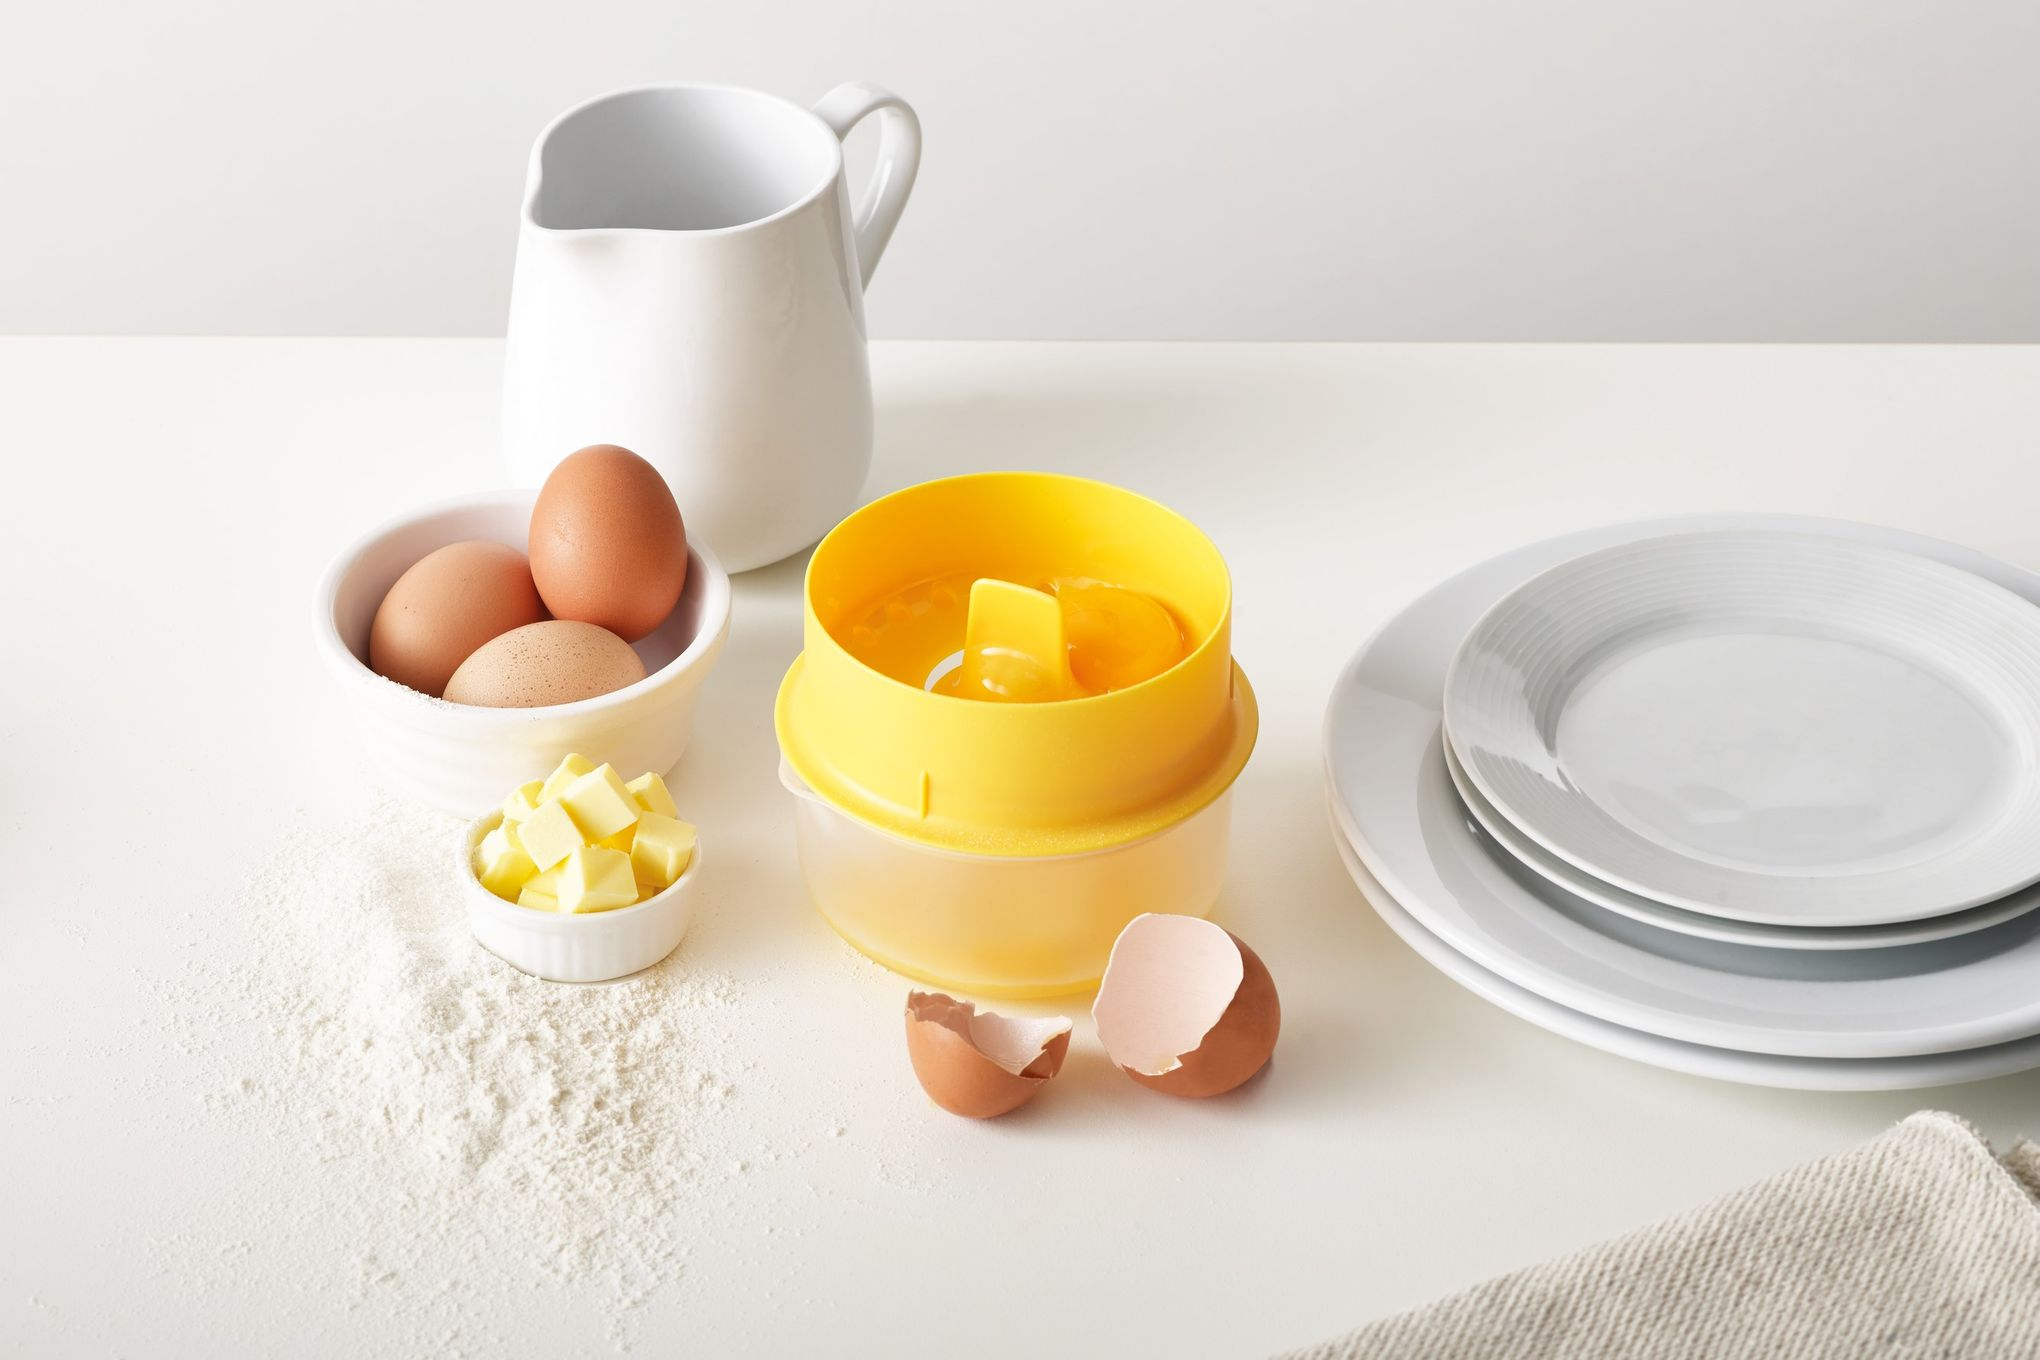 Joseph Joseph Cooking and Baking YolkCatcher thumb 1